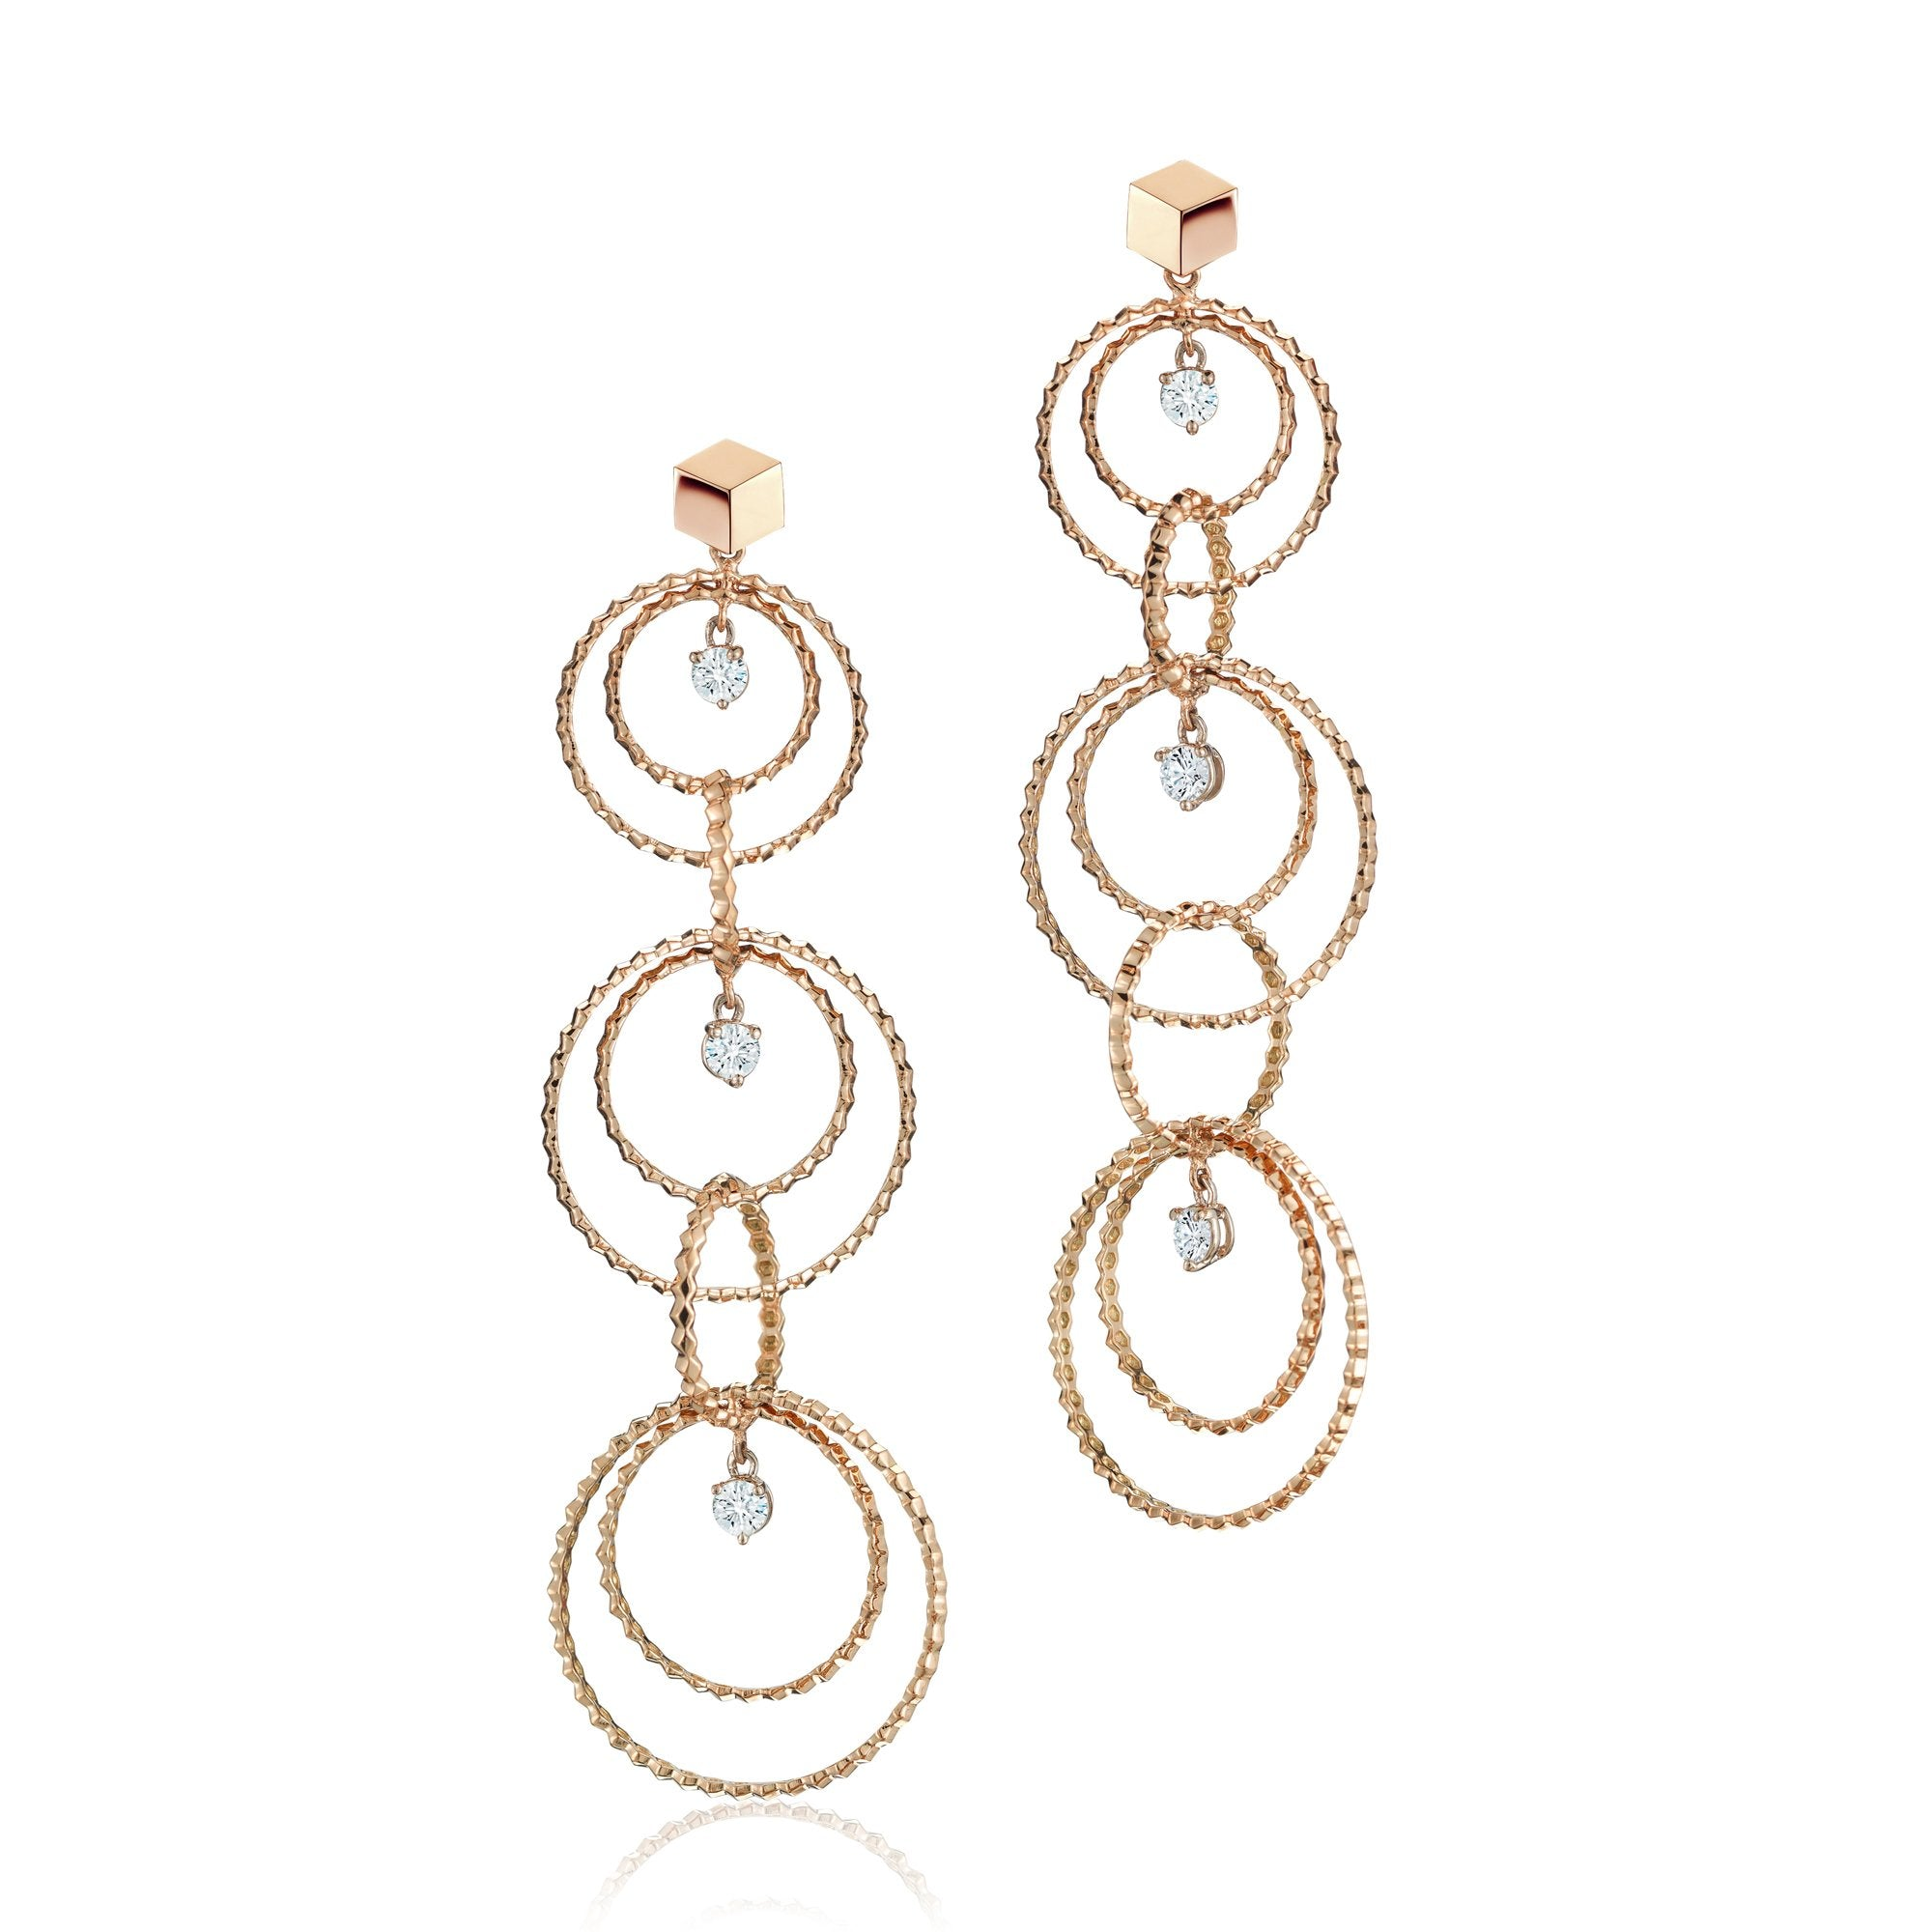 Rose Gold and Diamond 'Brillante® Circoli' Earrings, Long - Paolo Costagli - 1